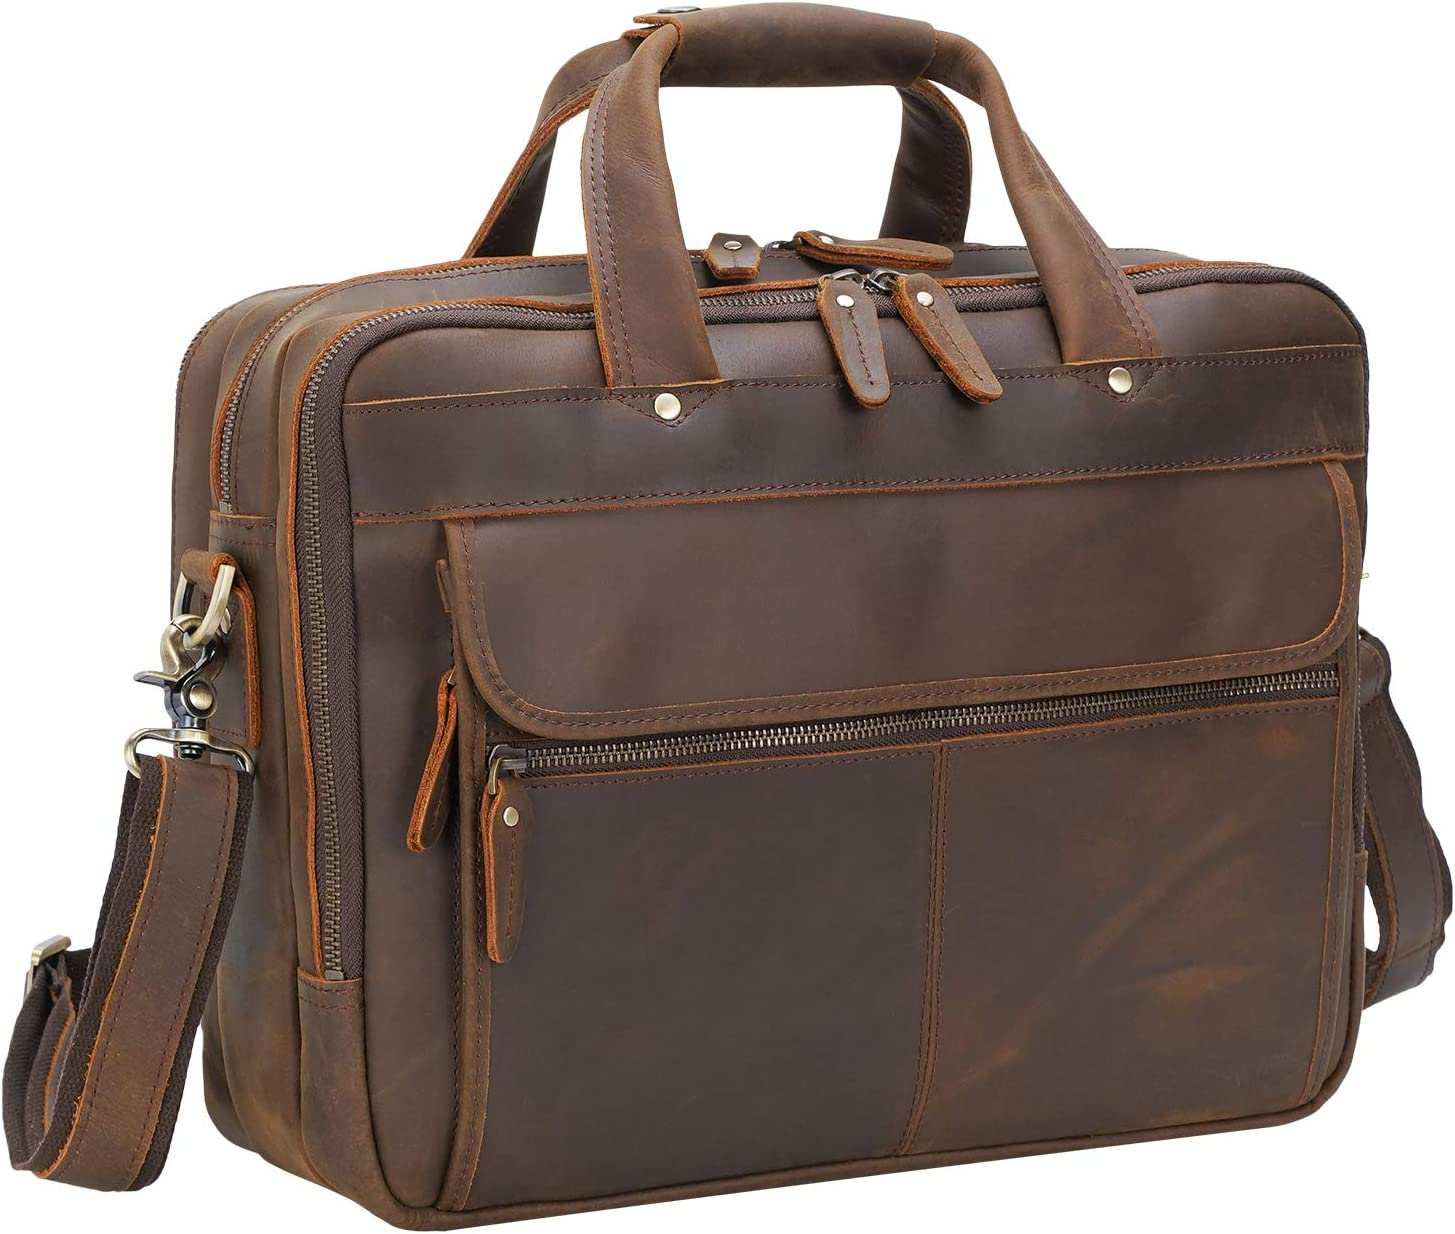 "Polare Modern Attaché Style 15.7"" Full Grain Italian Leather Laptop Business Briefcase for Men"